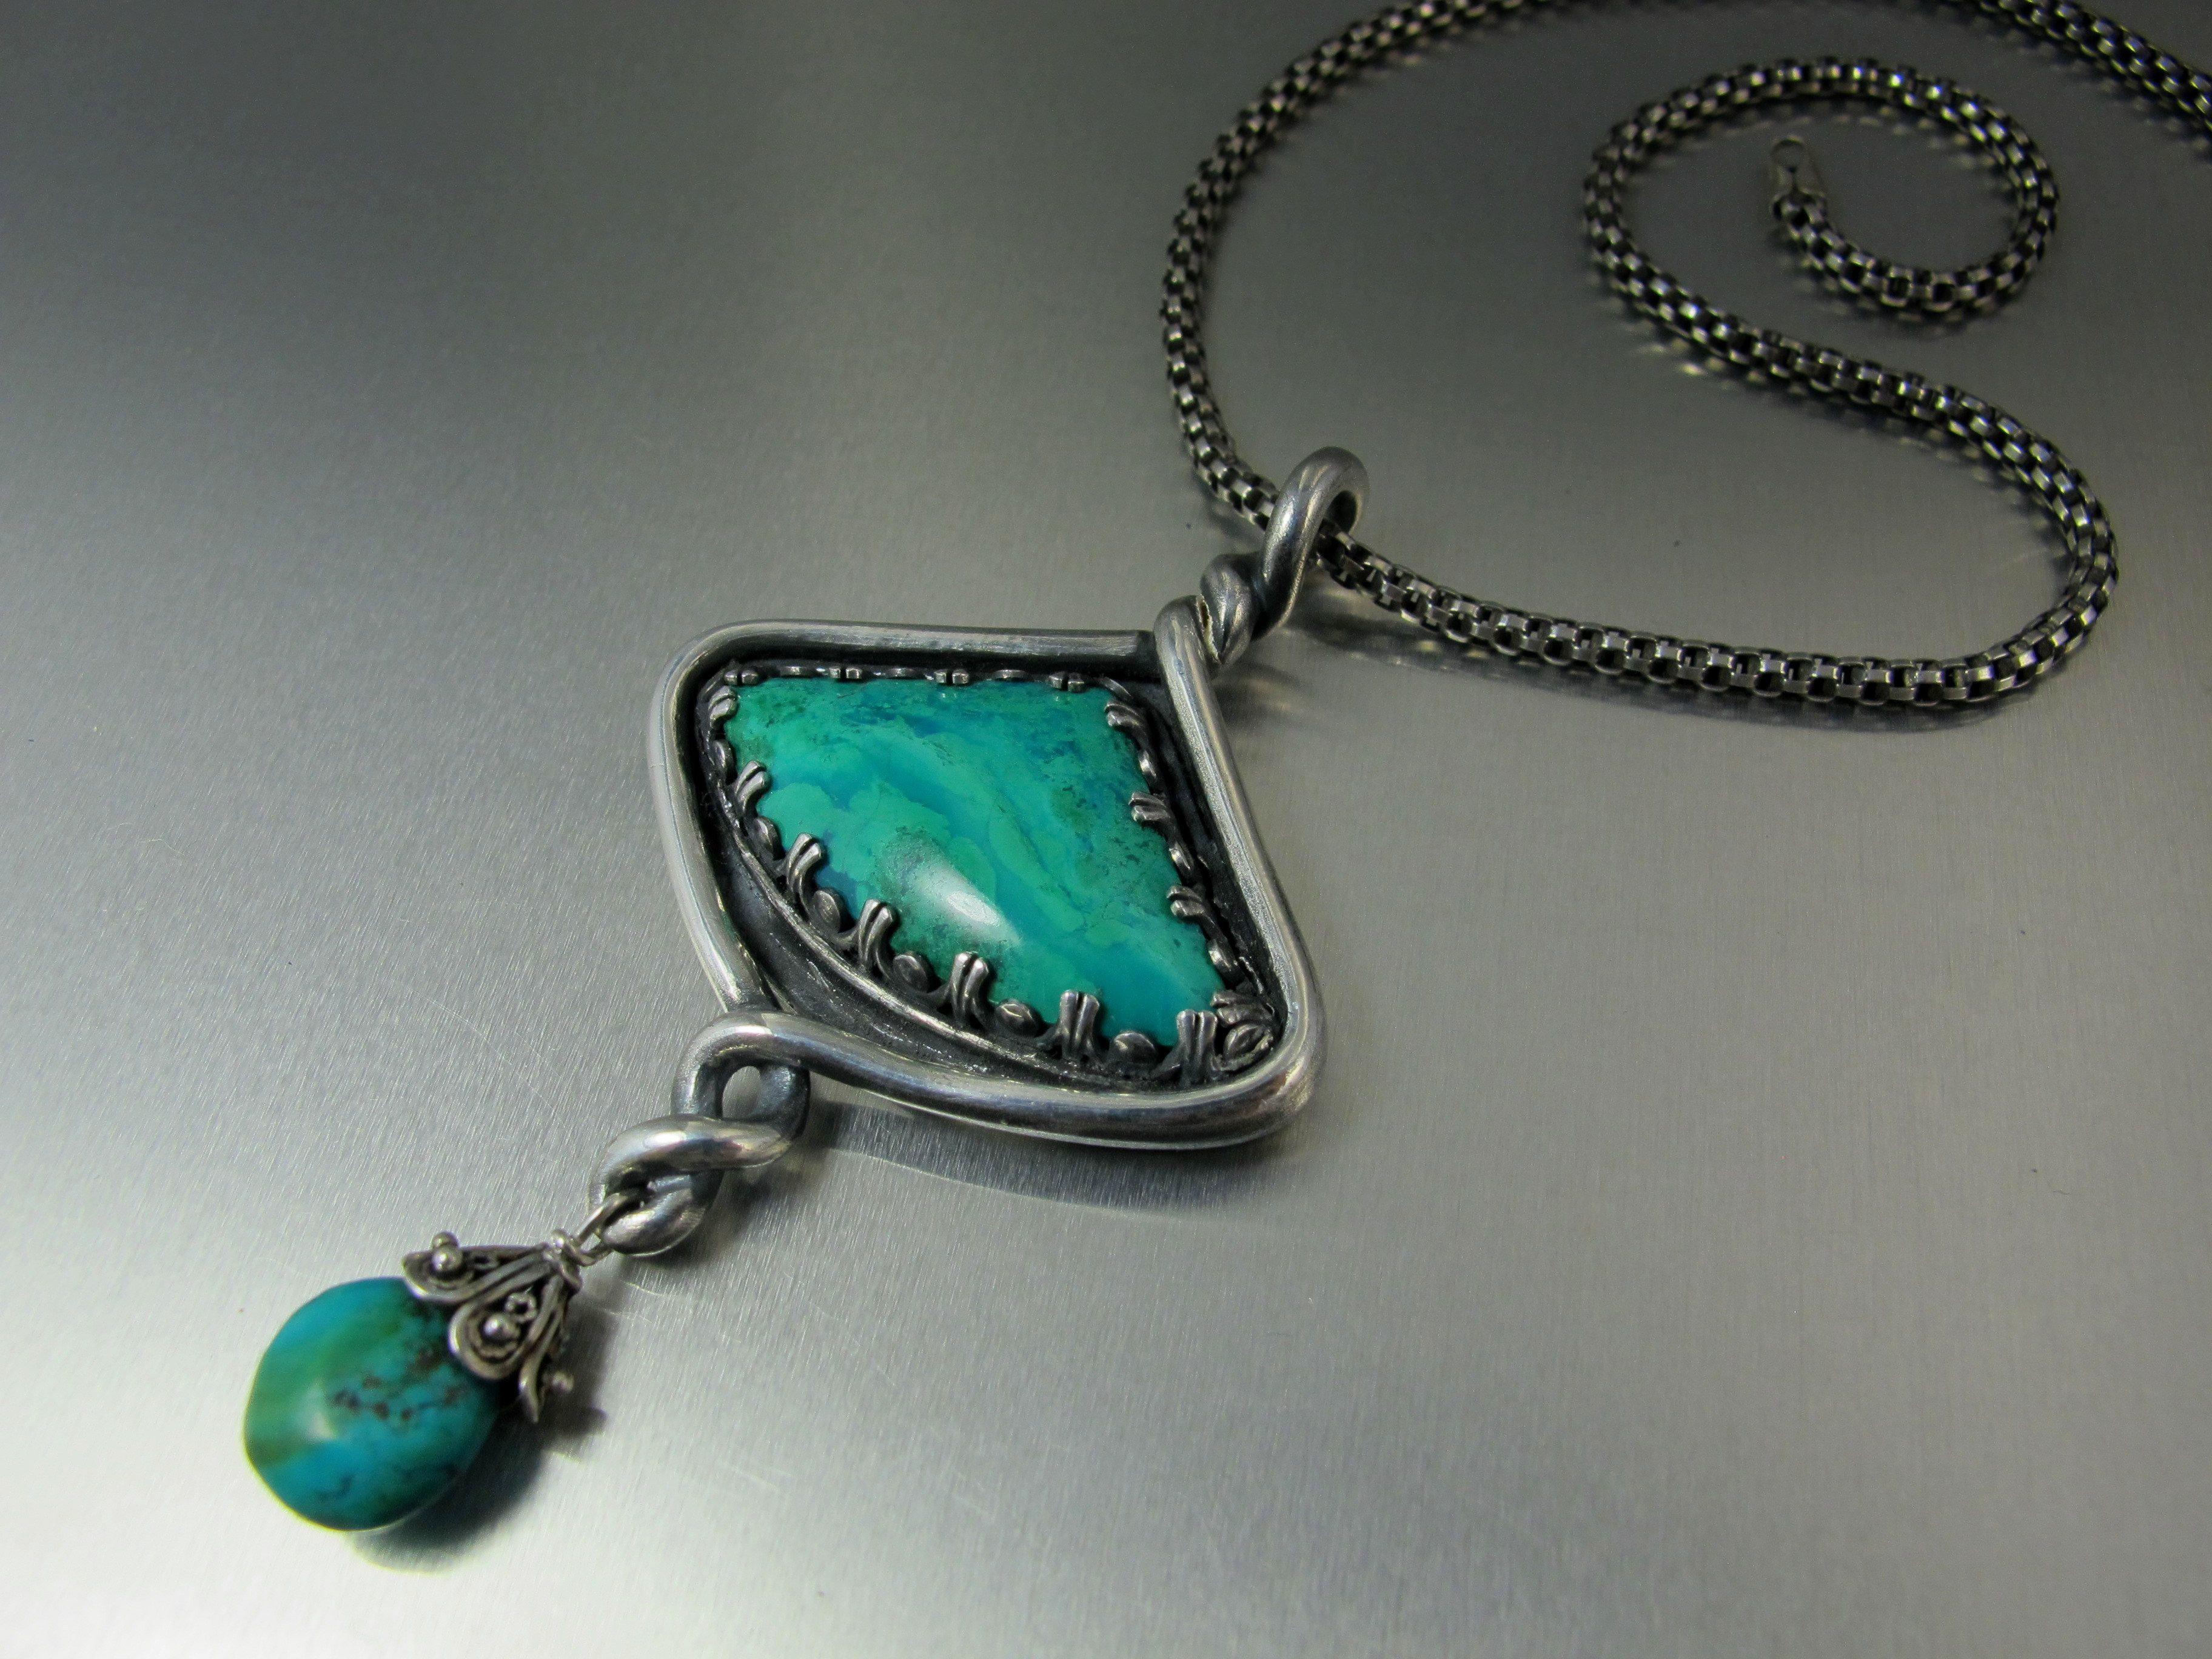 I did this piece with fine silver metal clay.  The bezel holding the stone is sterling gallery wire.  The focal stone is Chrysocolla with a turquoise dangle.